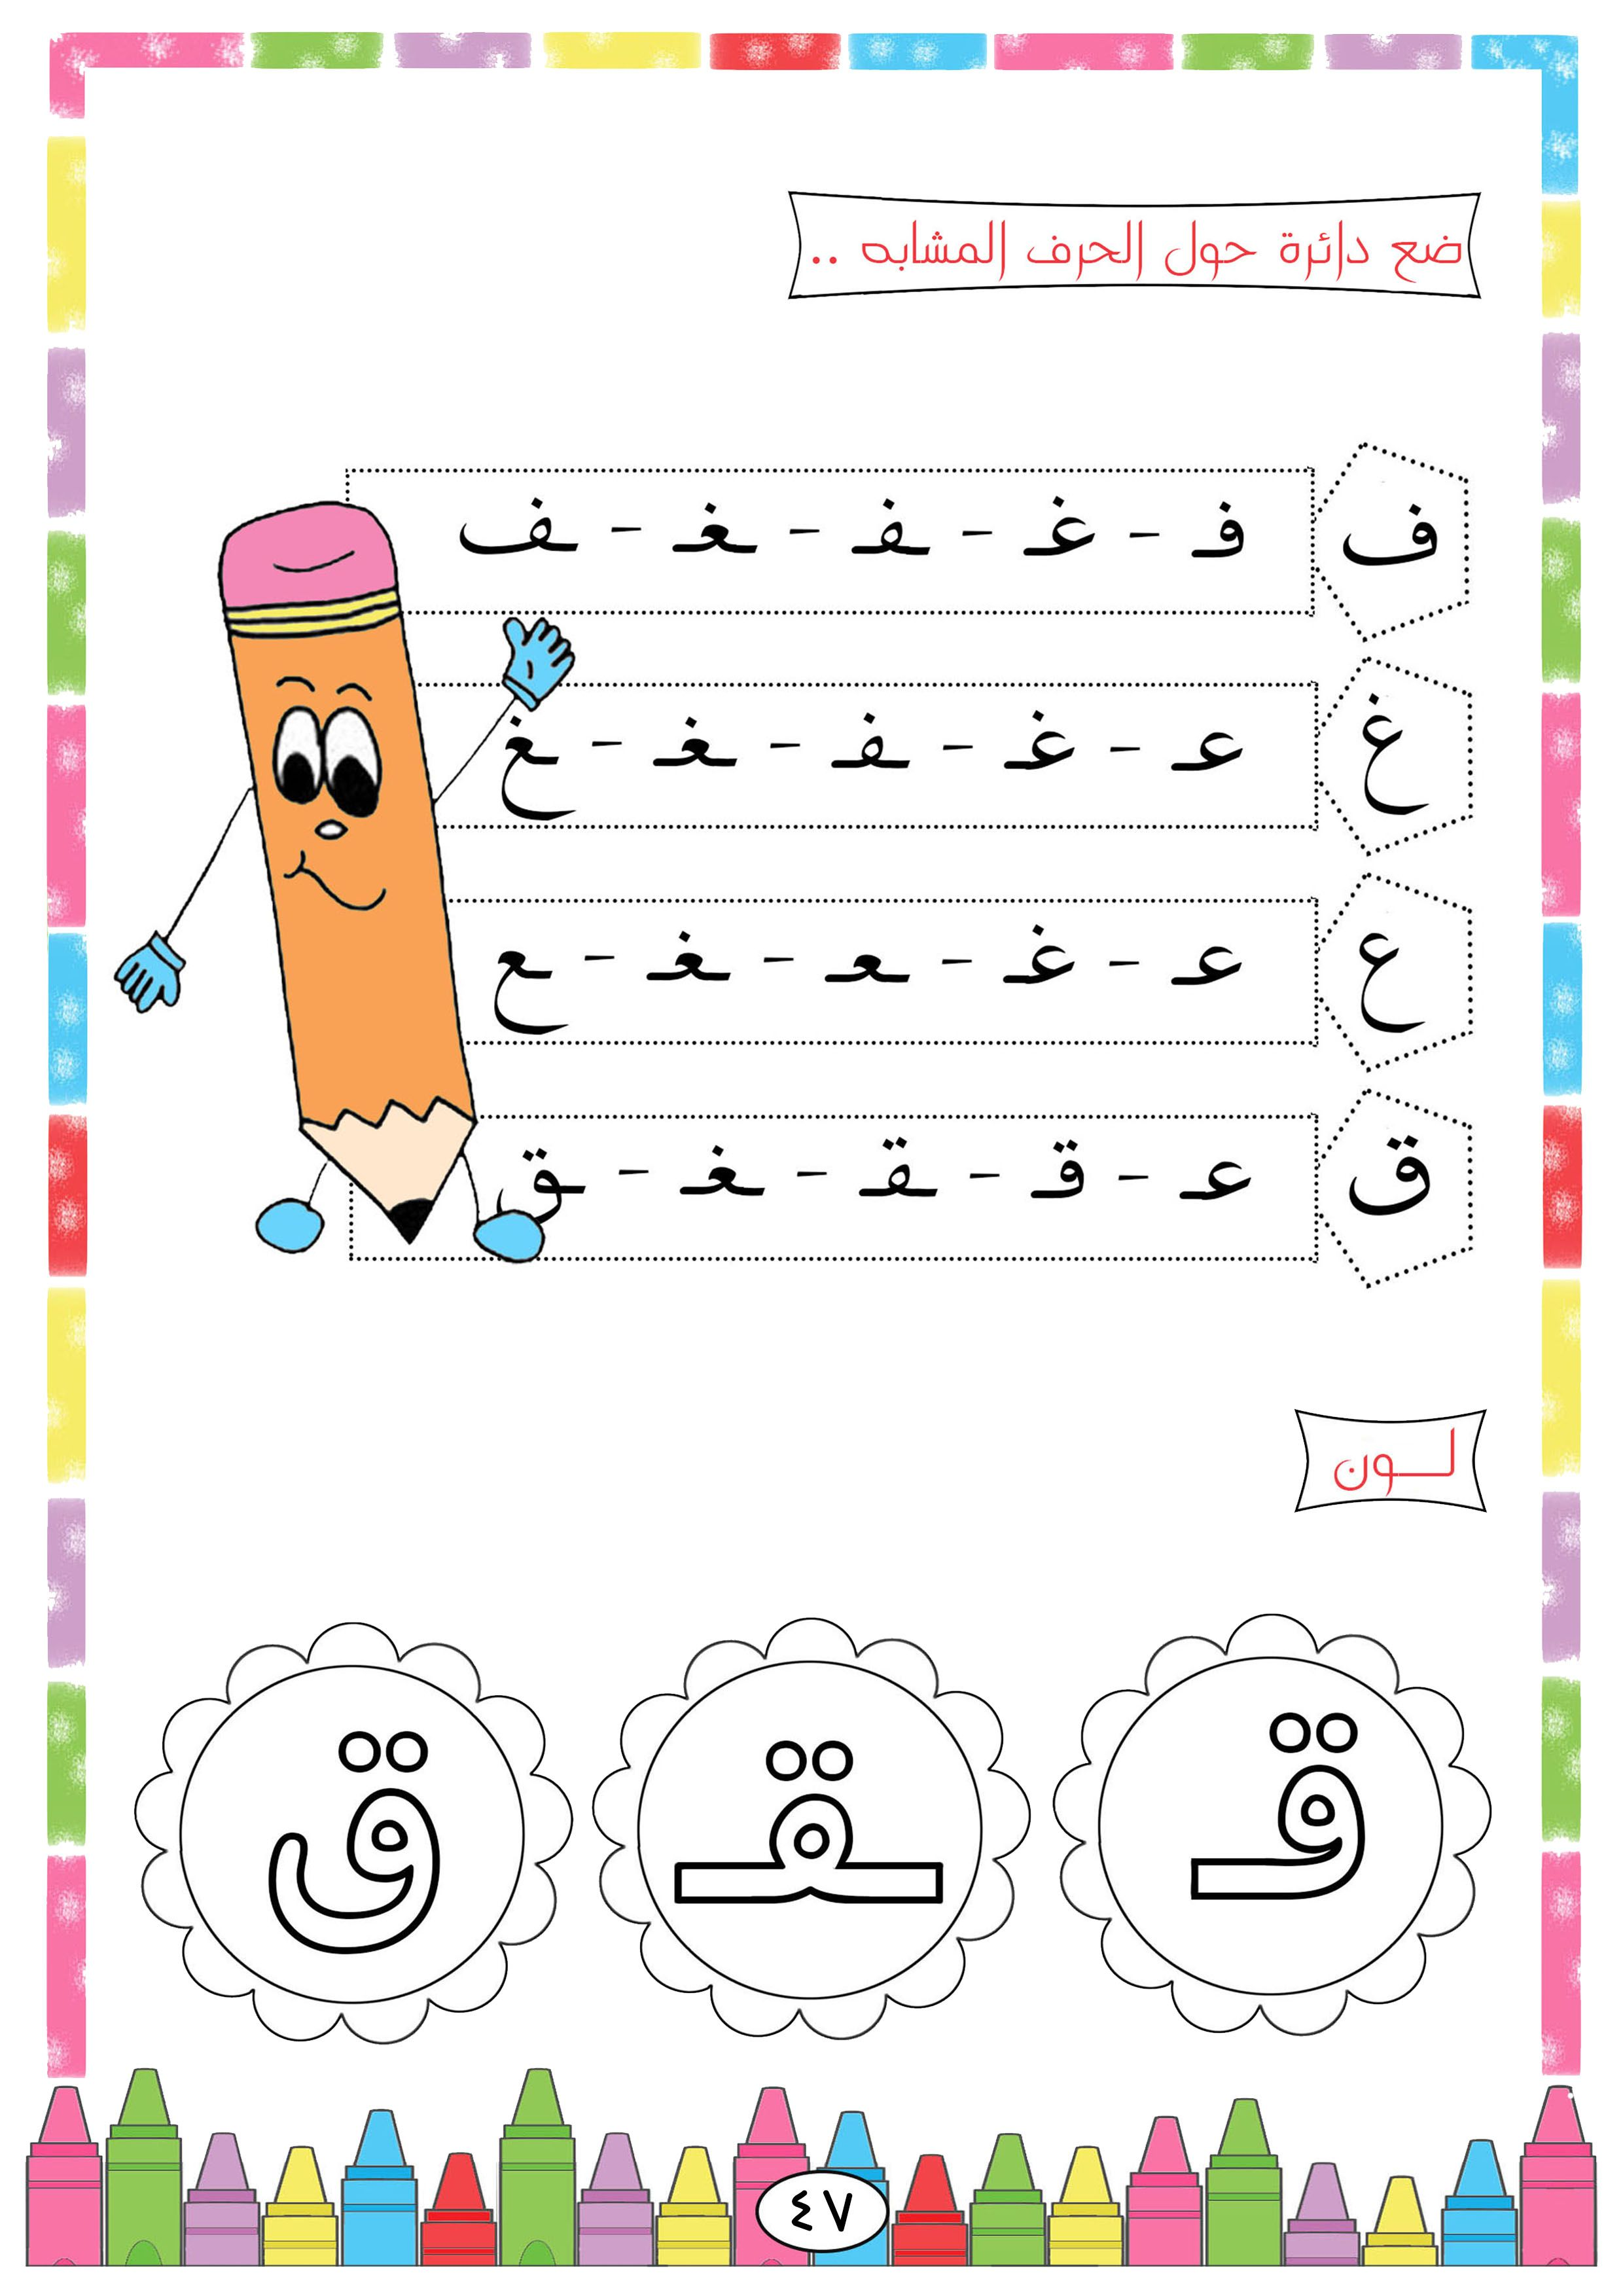 pin by elyamama on arabic lessons arabic alphabet for kids learning arabic. Black Bedroom Furniture Sets. Home Design Ideas